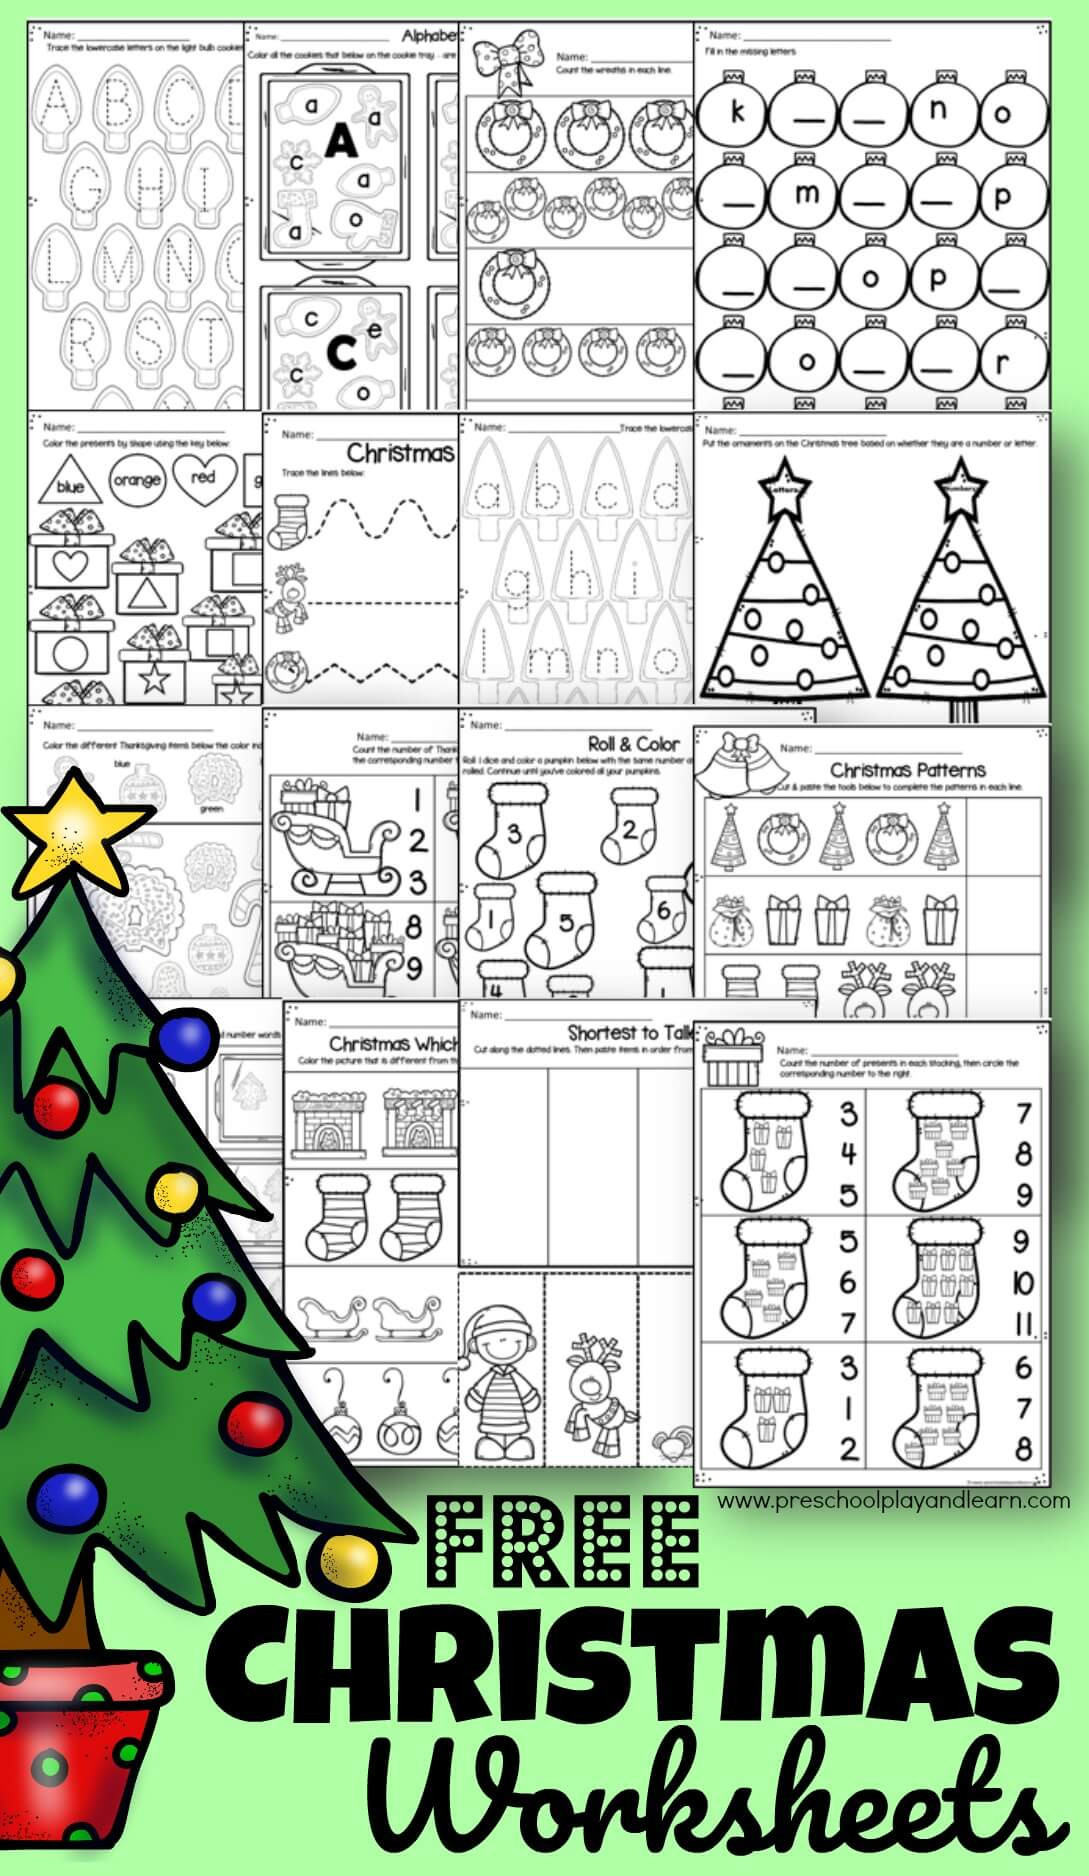 Christmas Worksheets for Preschoolers Free Christmas Worksheets for Preschoolers